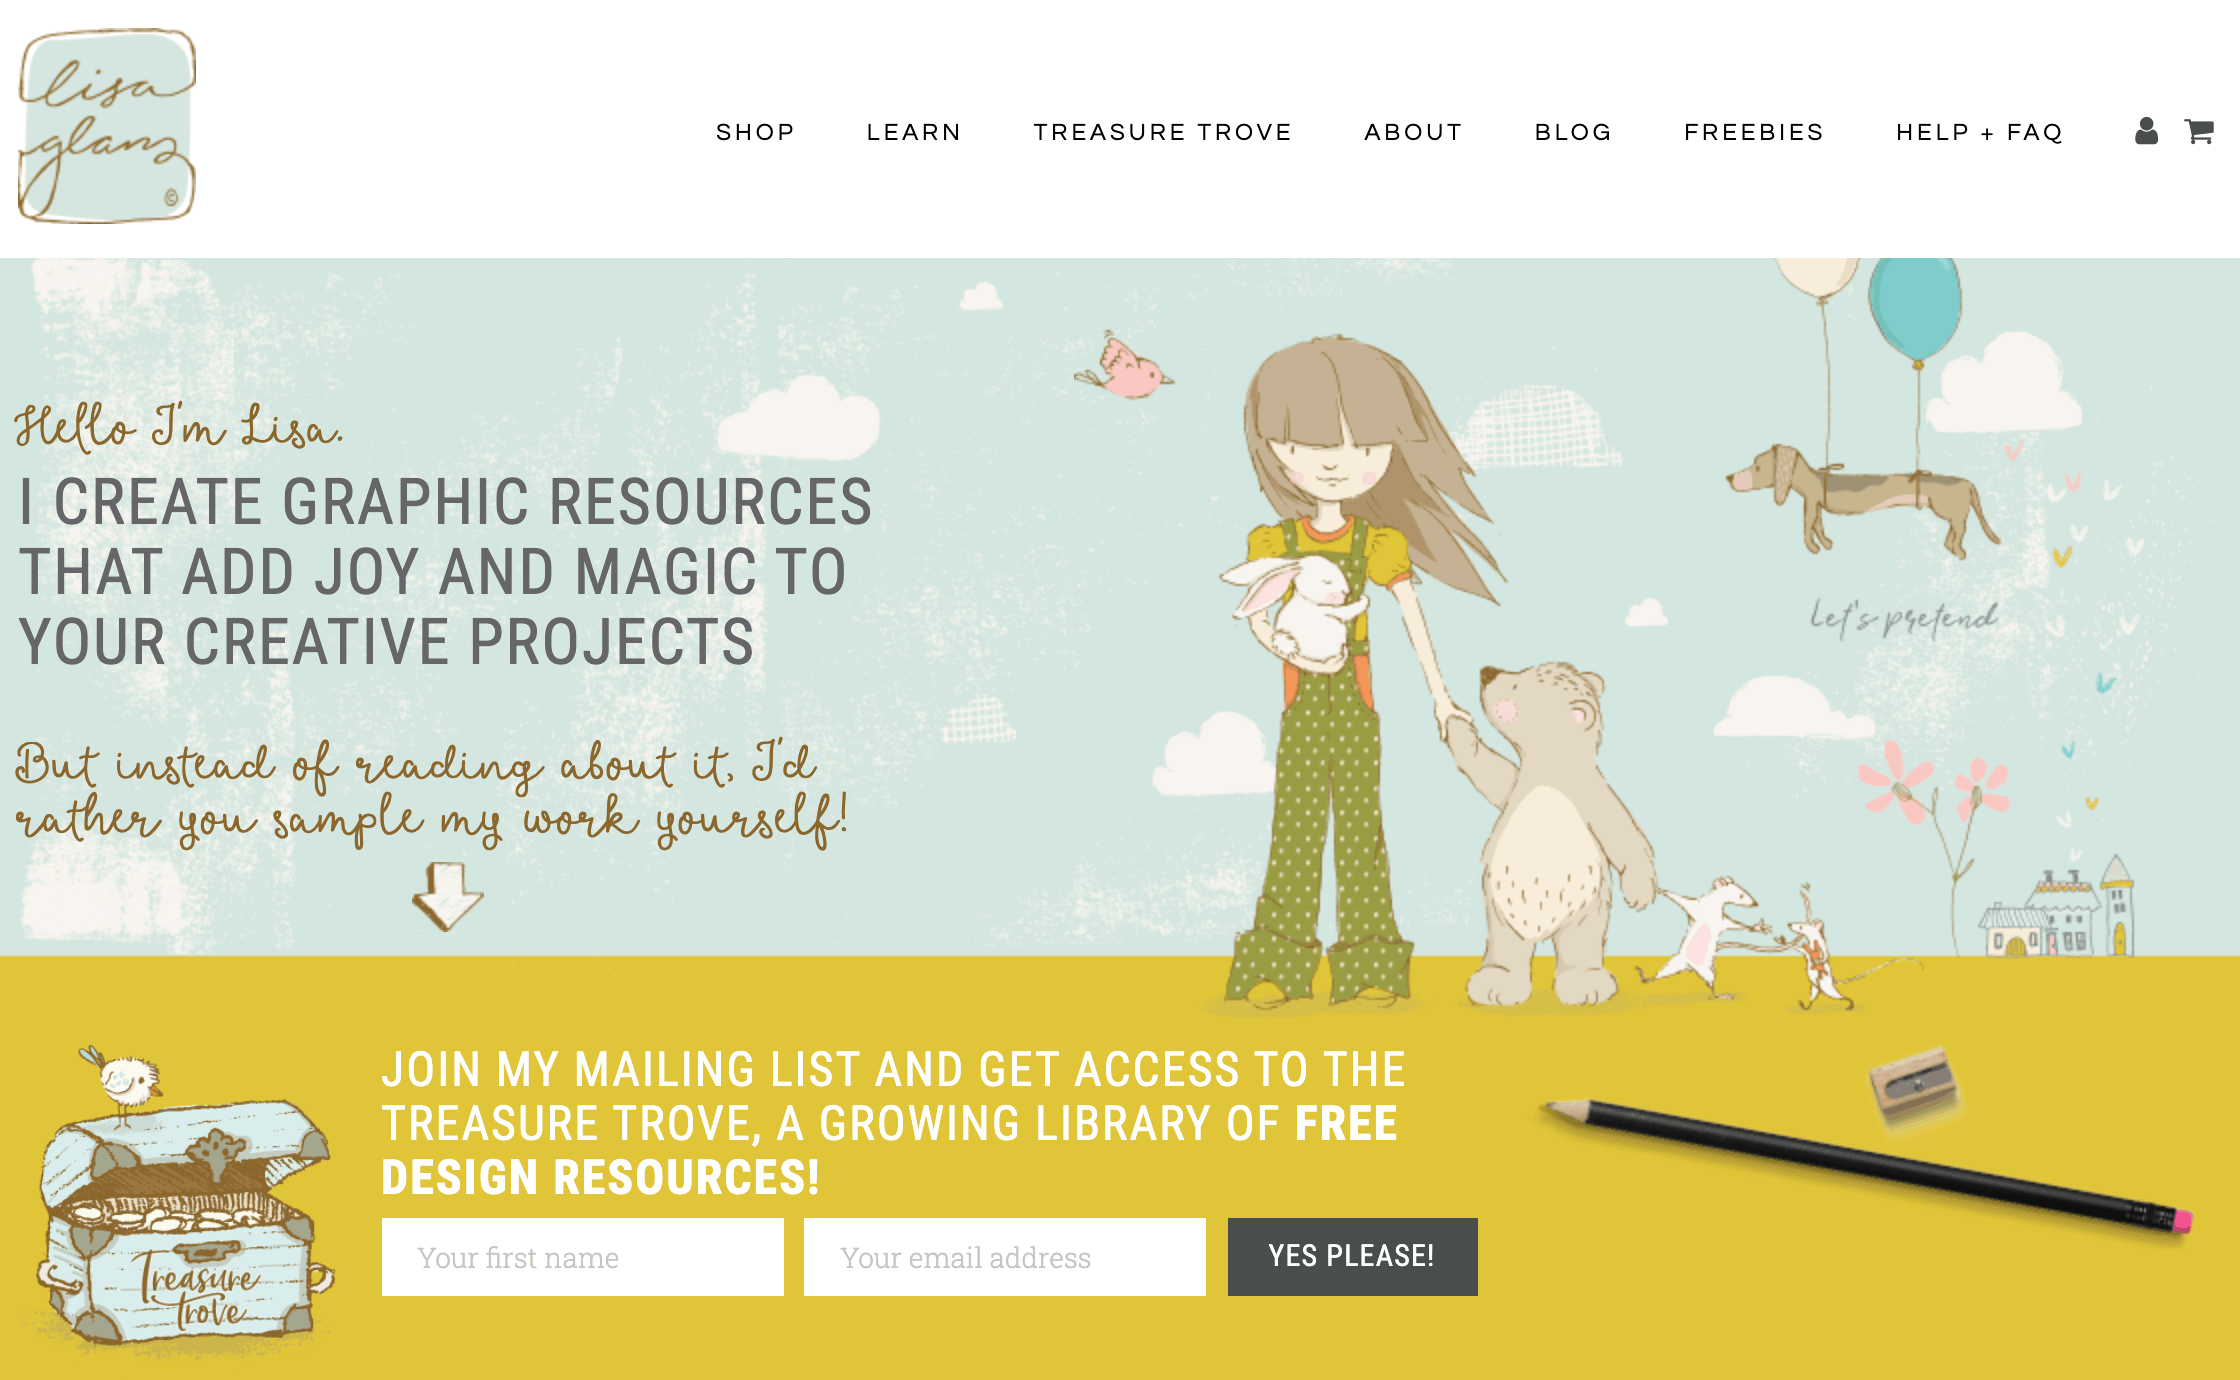 Lisa Glanz uses her website to raise awareness on her Skillshare classes and get illustration sales.